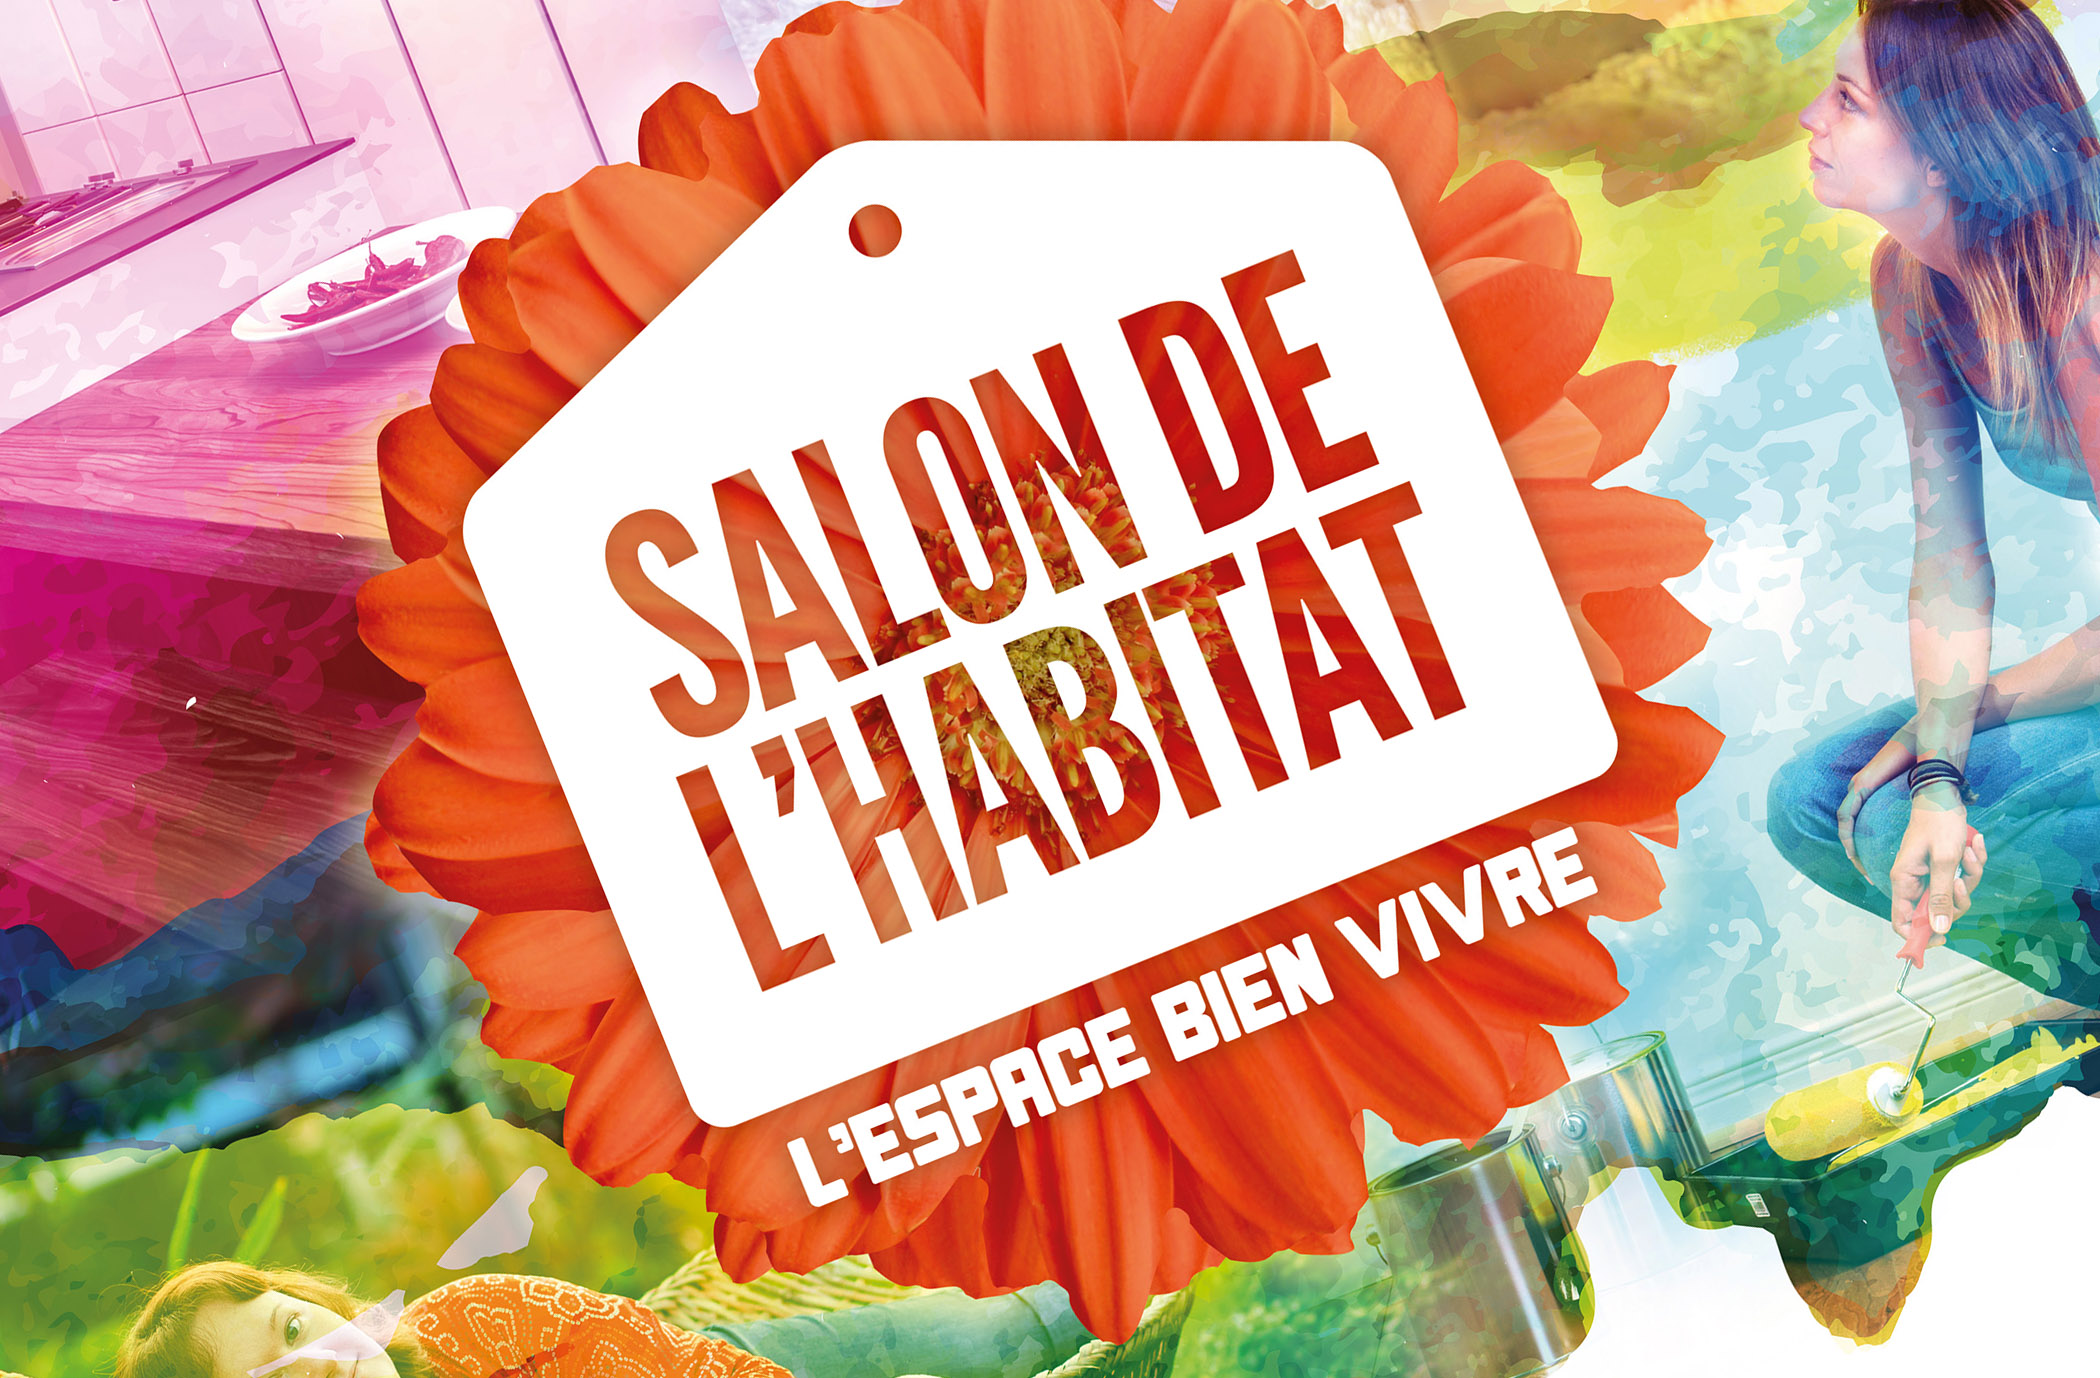 Gildas bizeul graphiste salon de l habitat nevers for Salon de l habitat valence